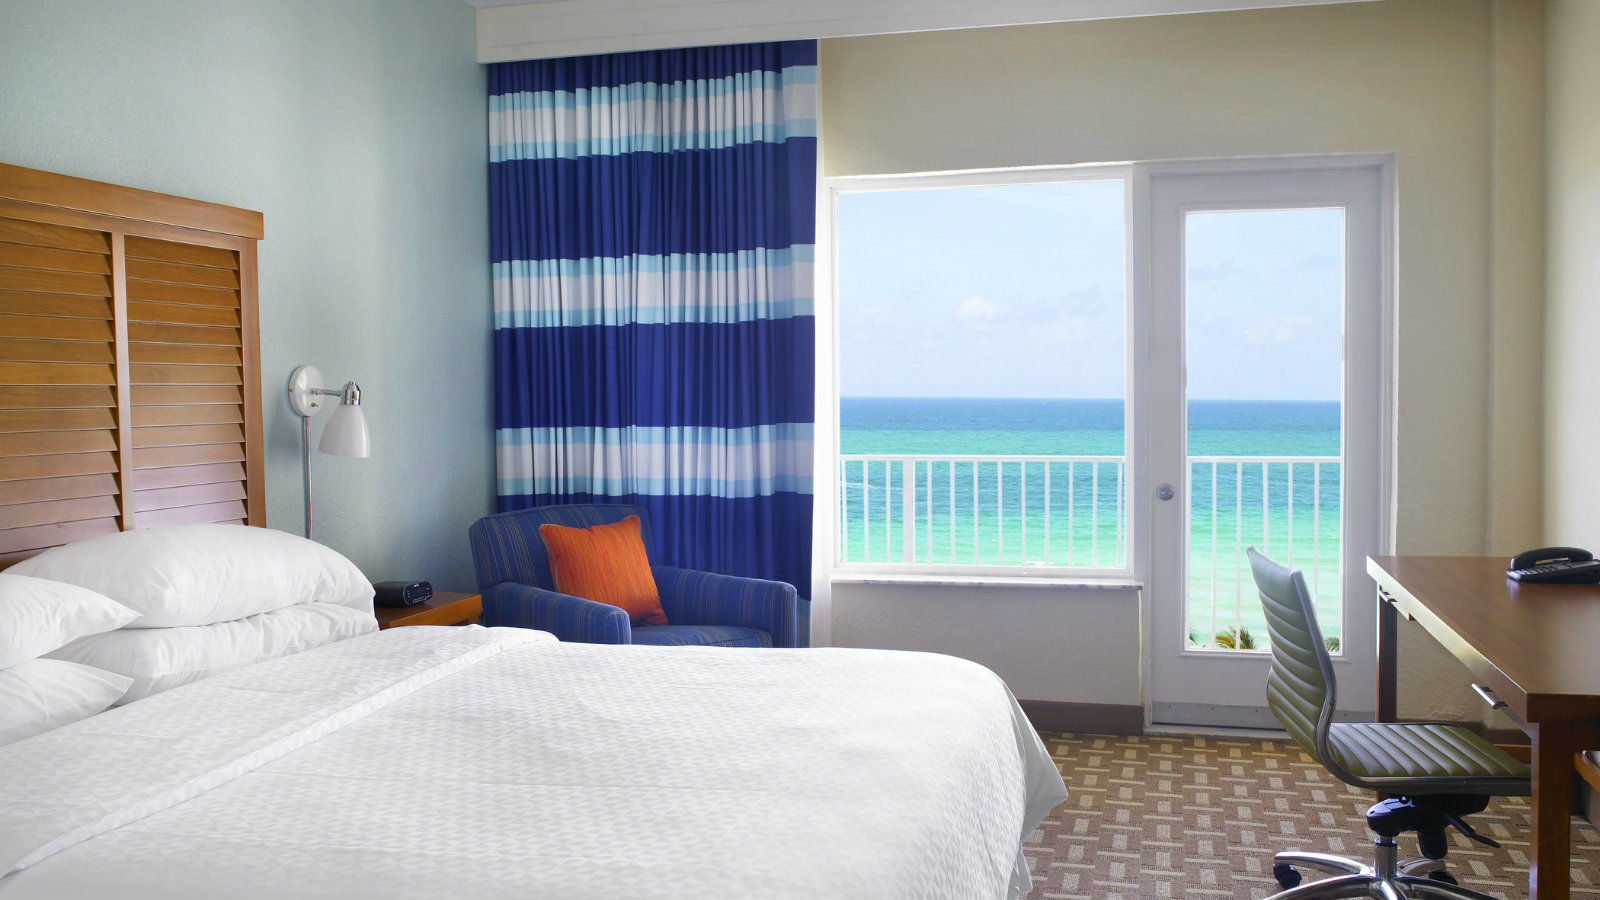 Miami Beach Accommodations - King Deluxe Oceanfront